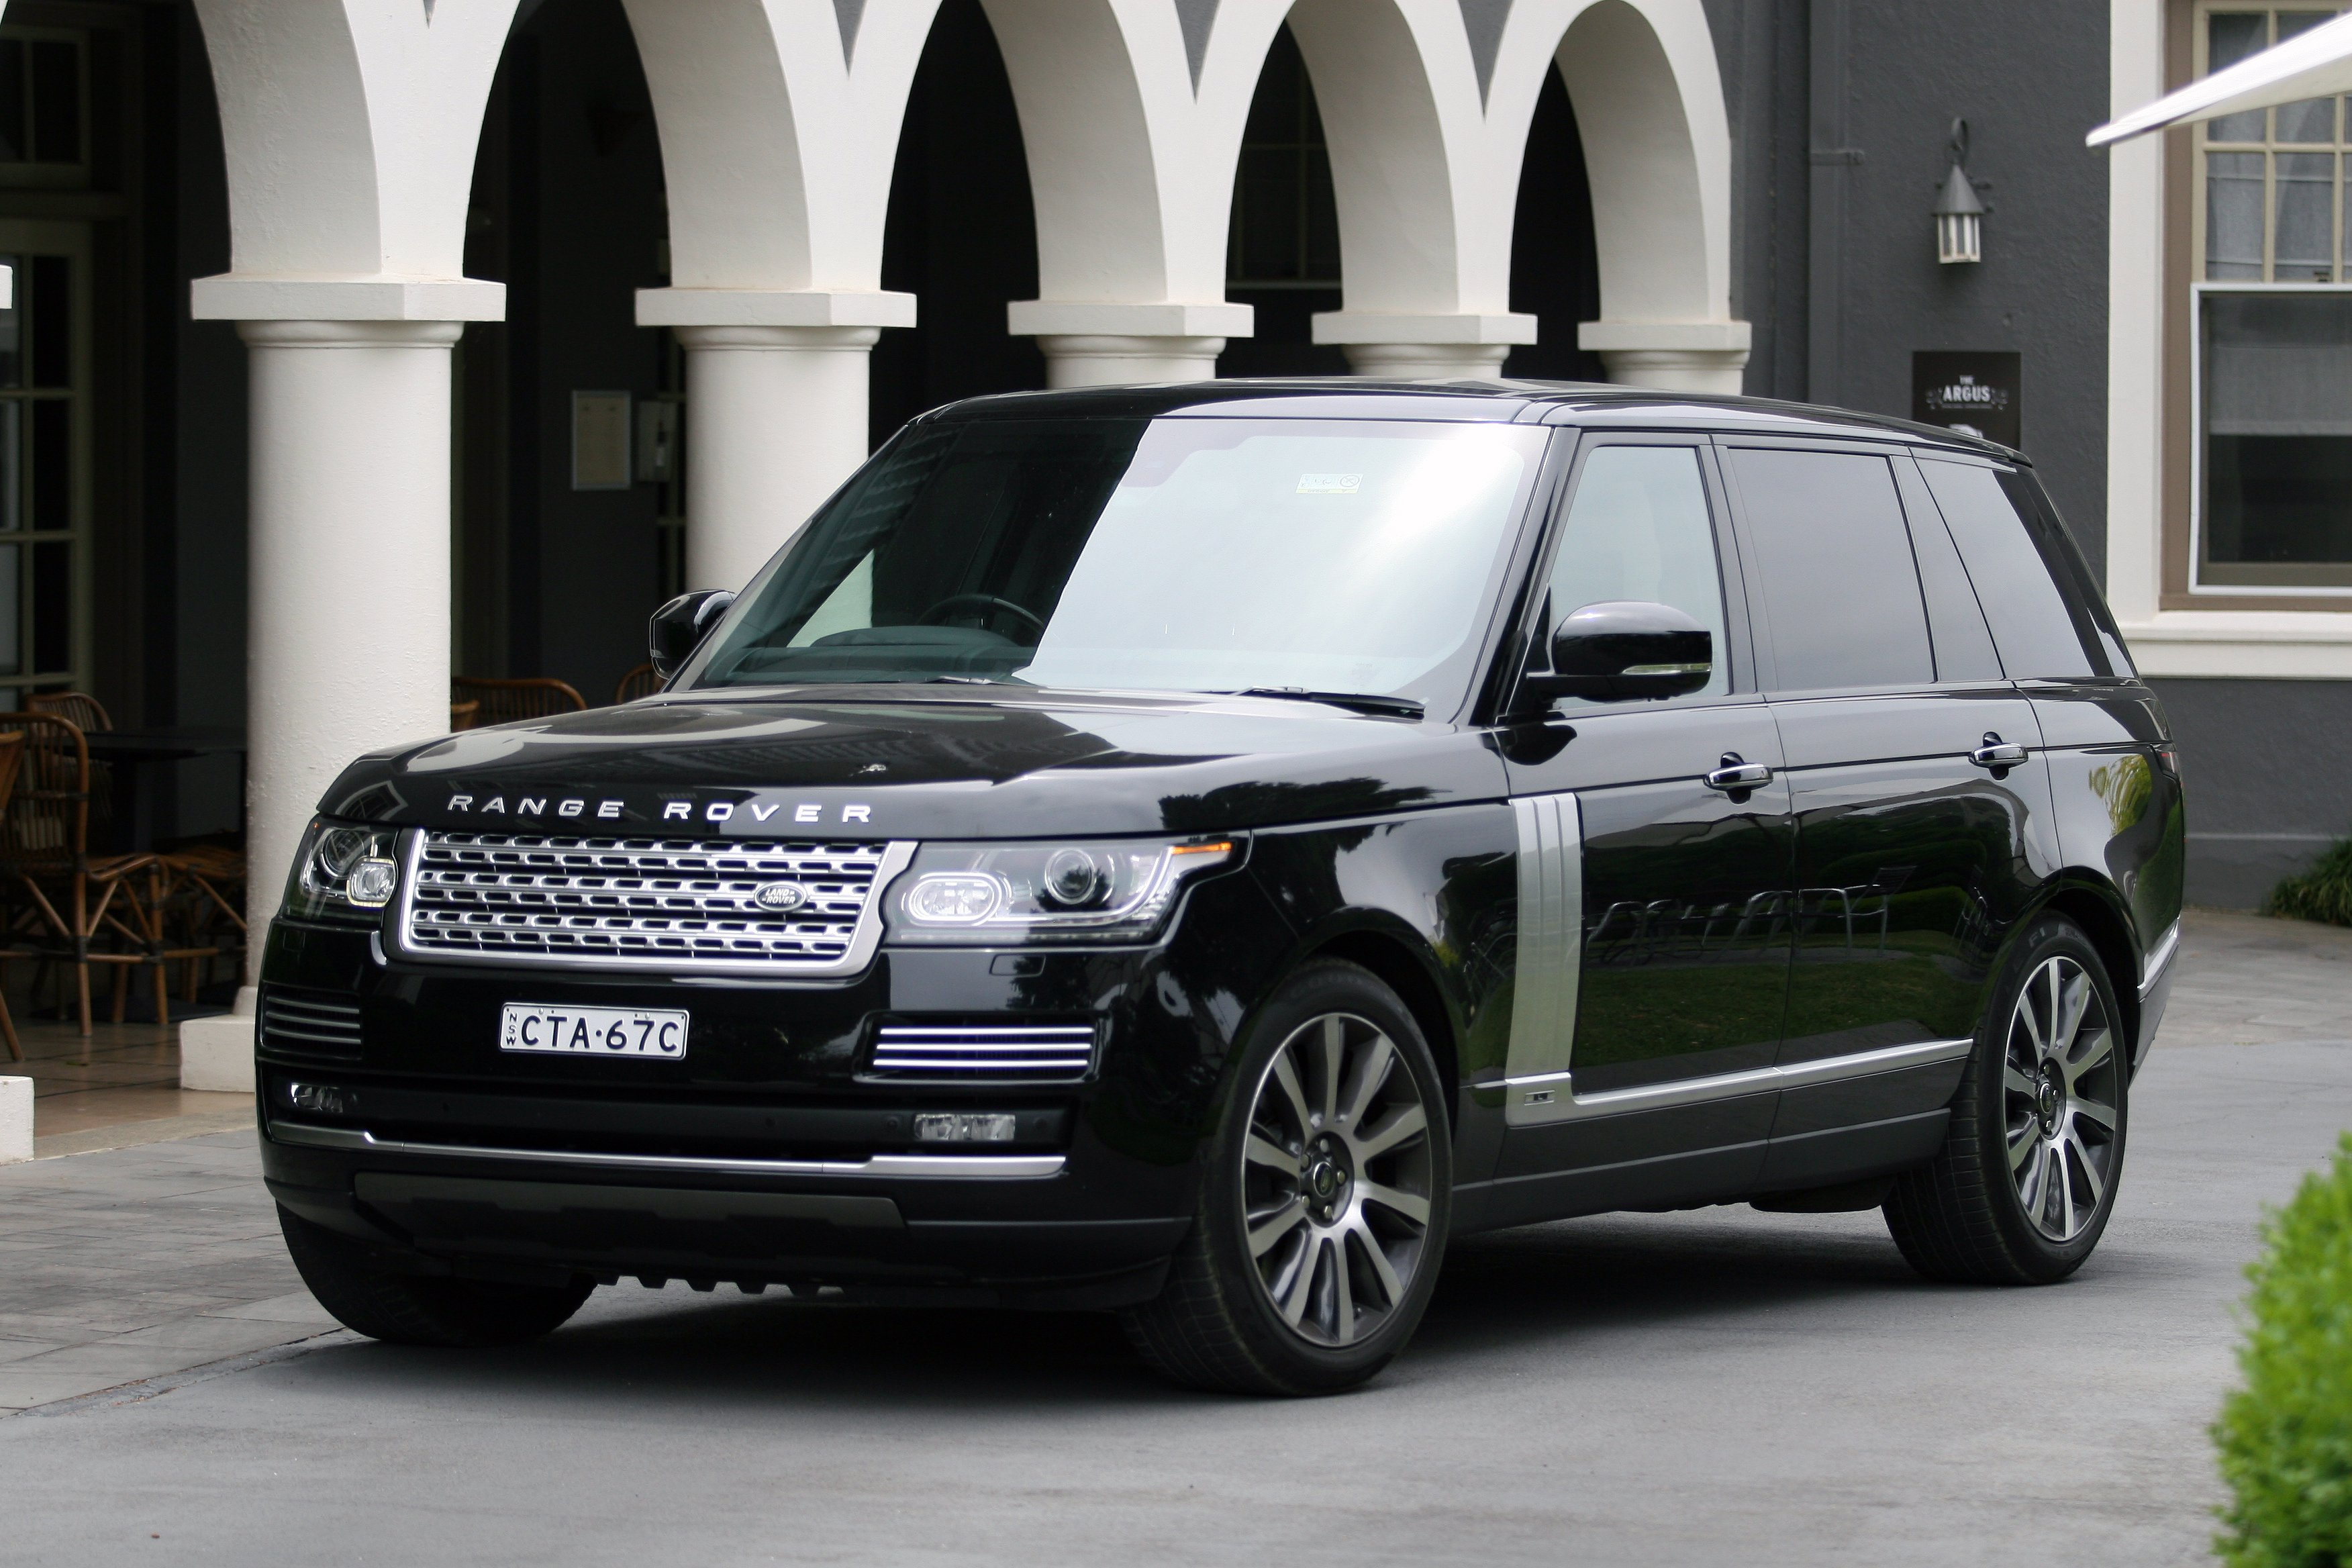 Range Rover Autobiography >> 2015 Range Rover Autobiography LWB Review: Luxury travel weekender - Photos | CarAdvice